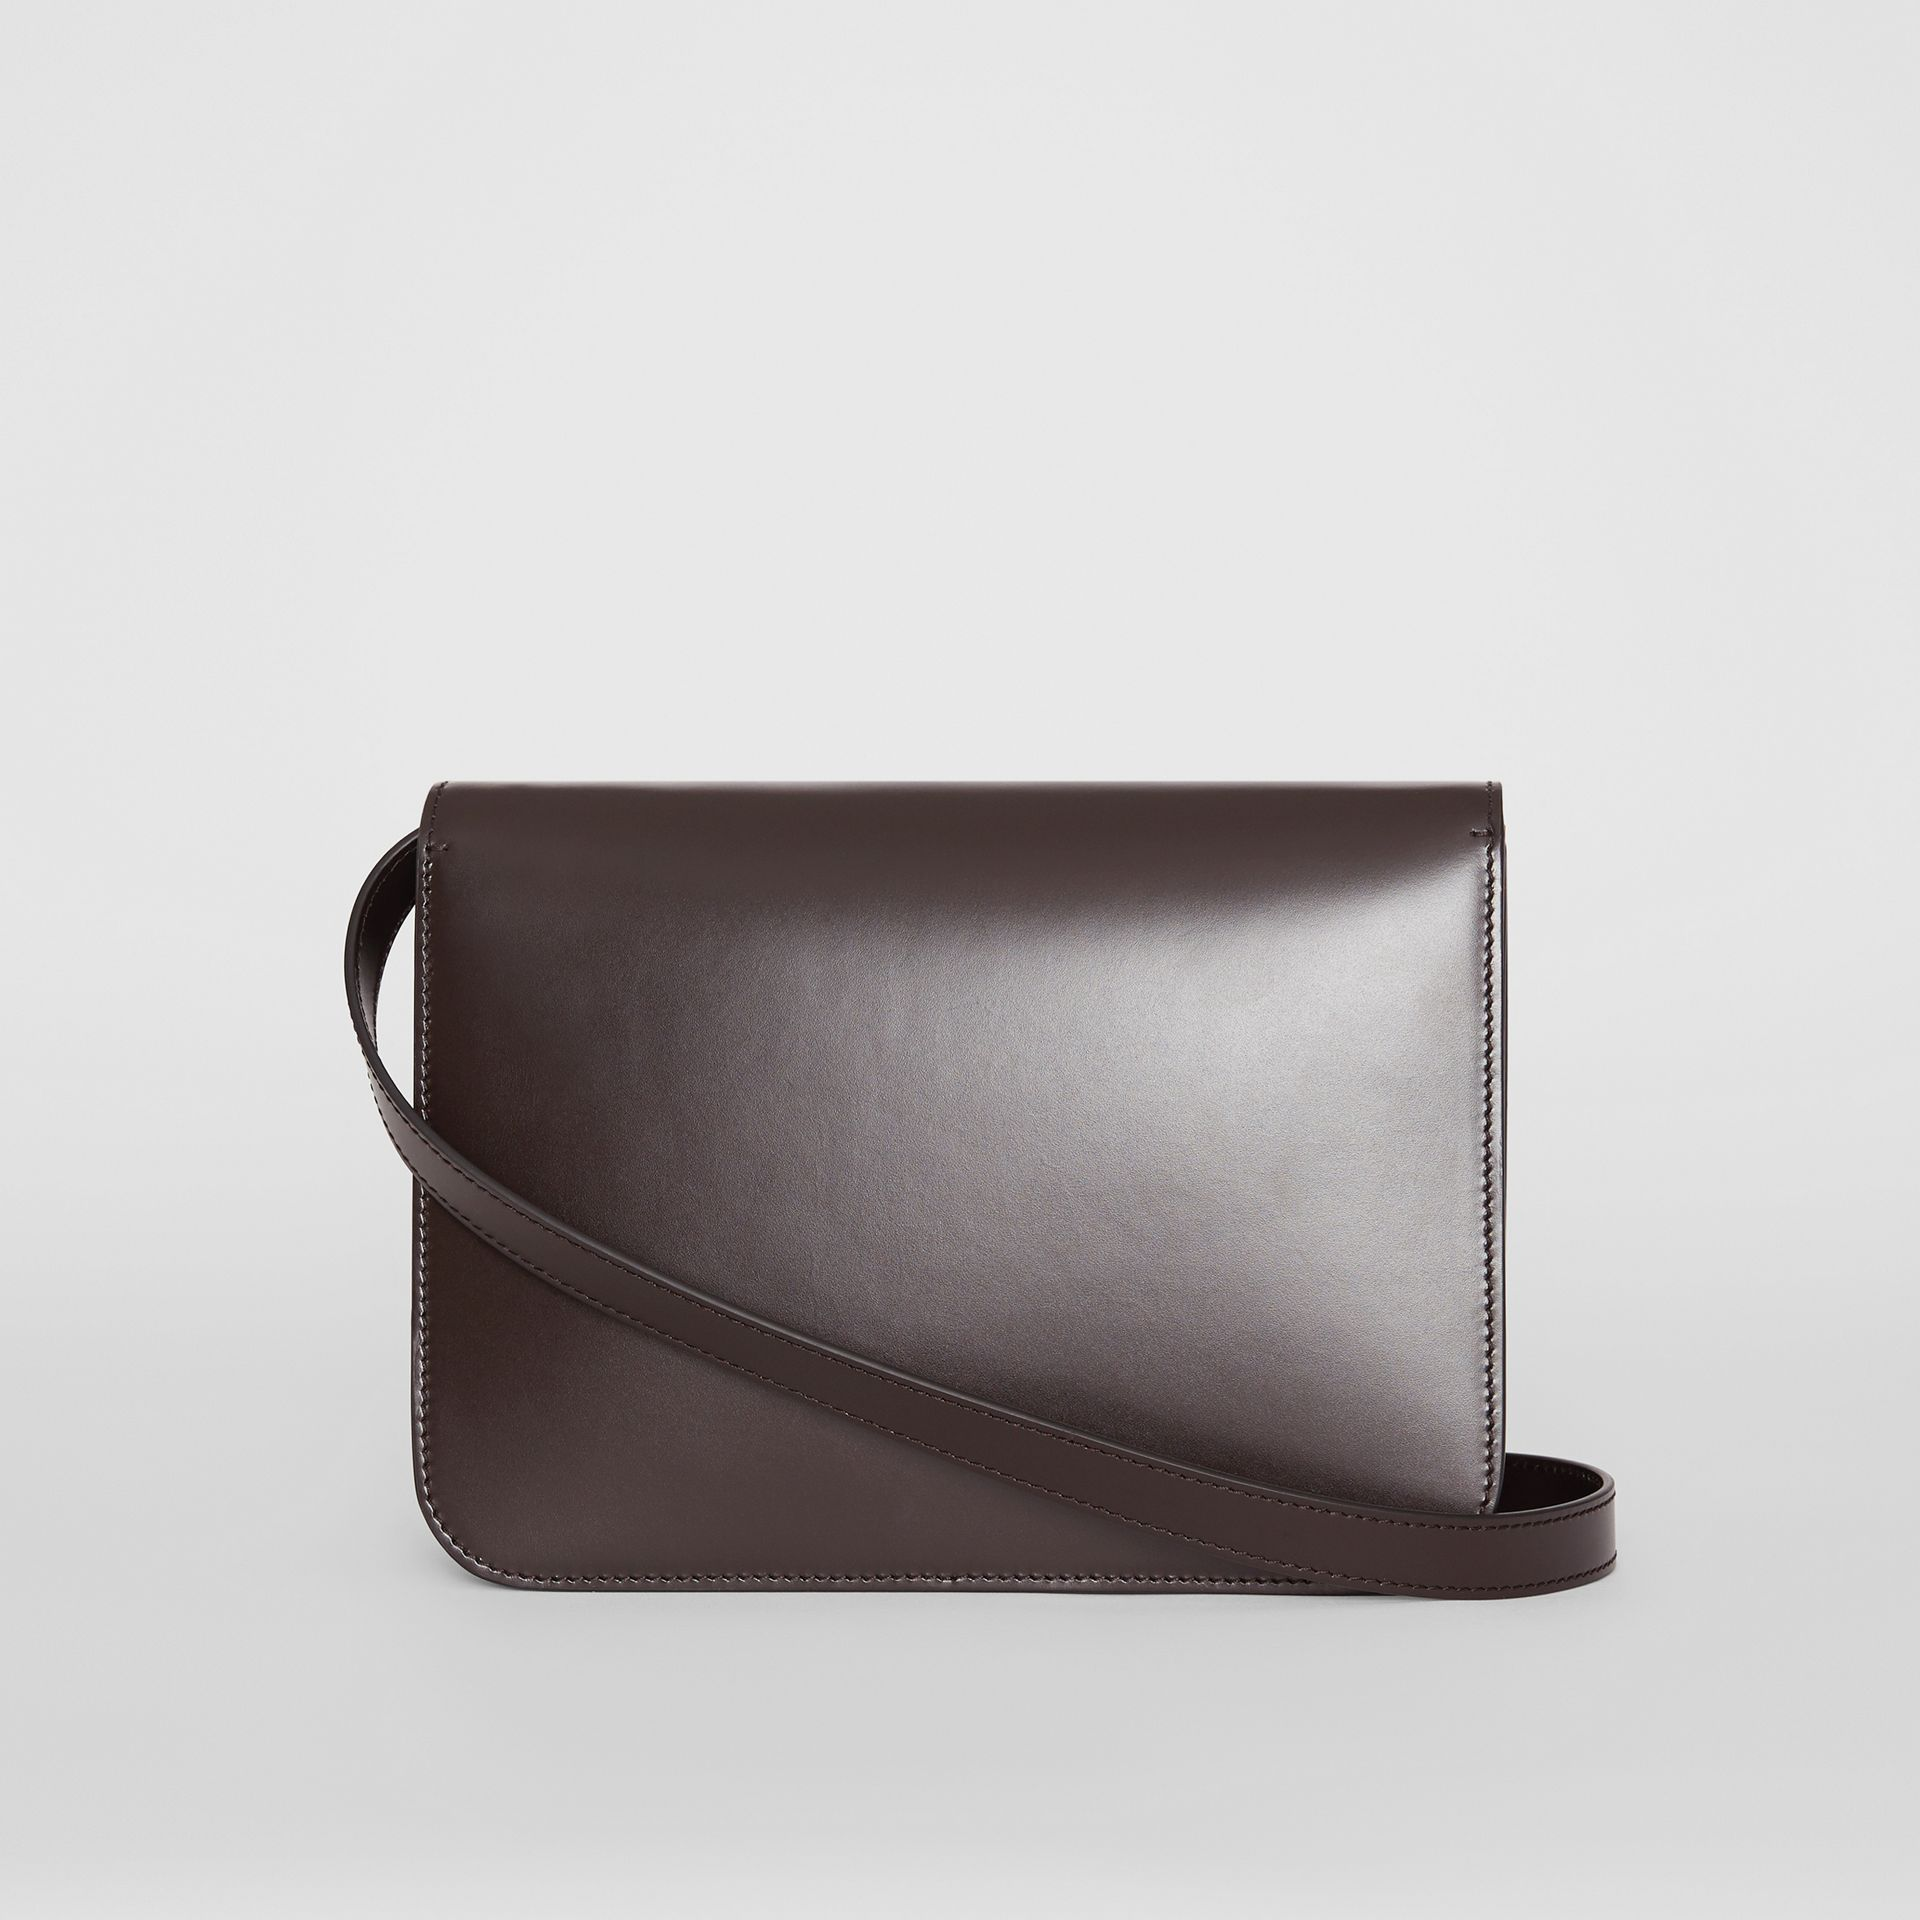 Medium Leather TB Bag in Coffee - Women | Burberry United States - gallery image 7